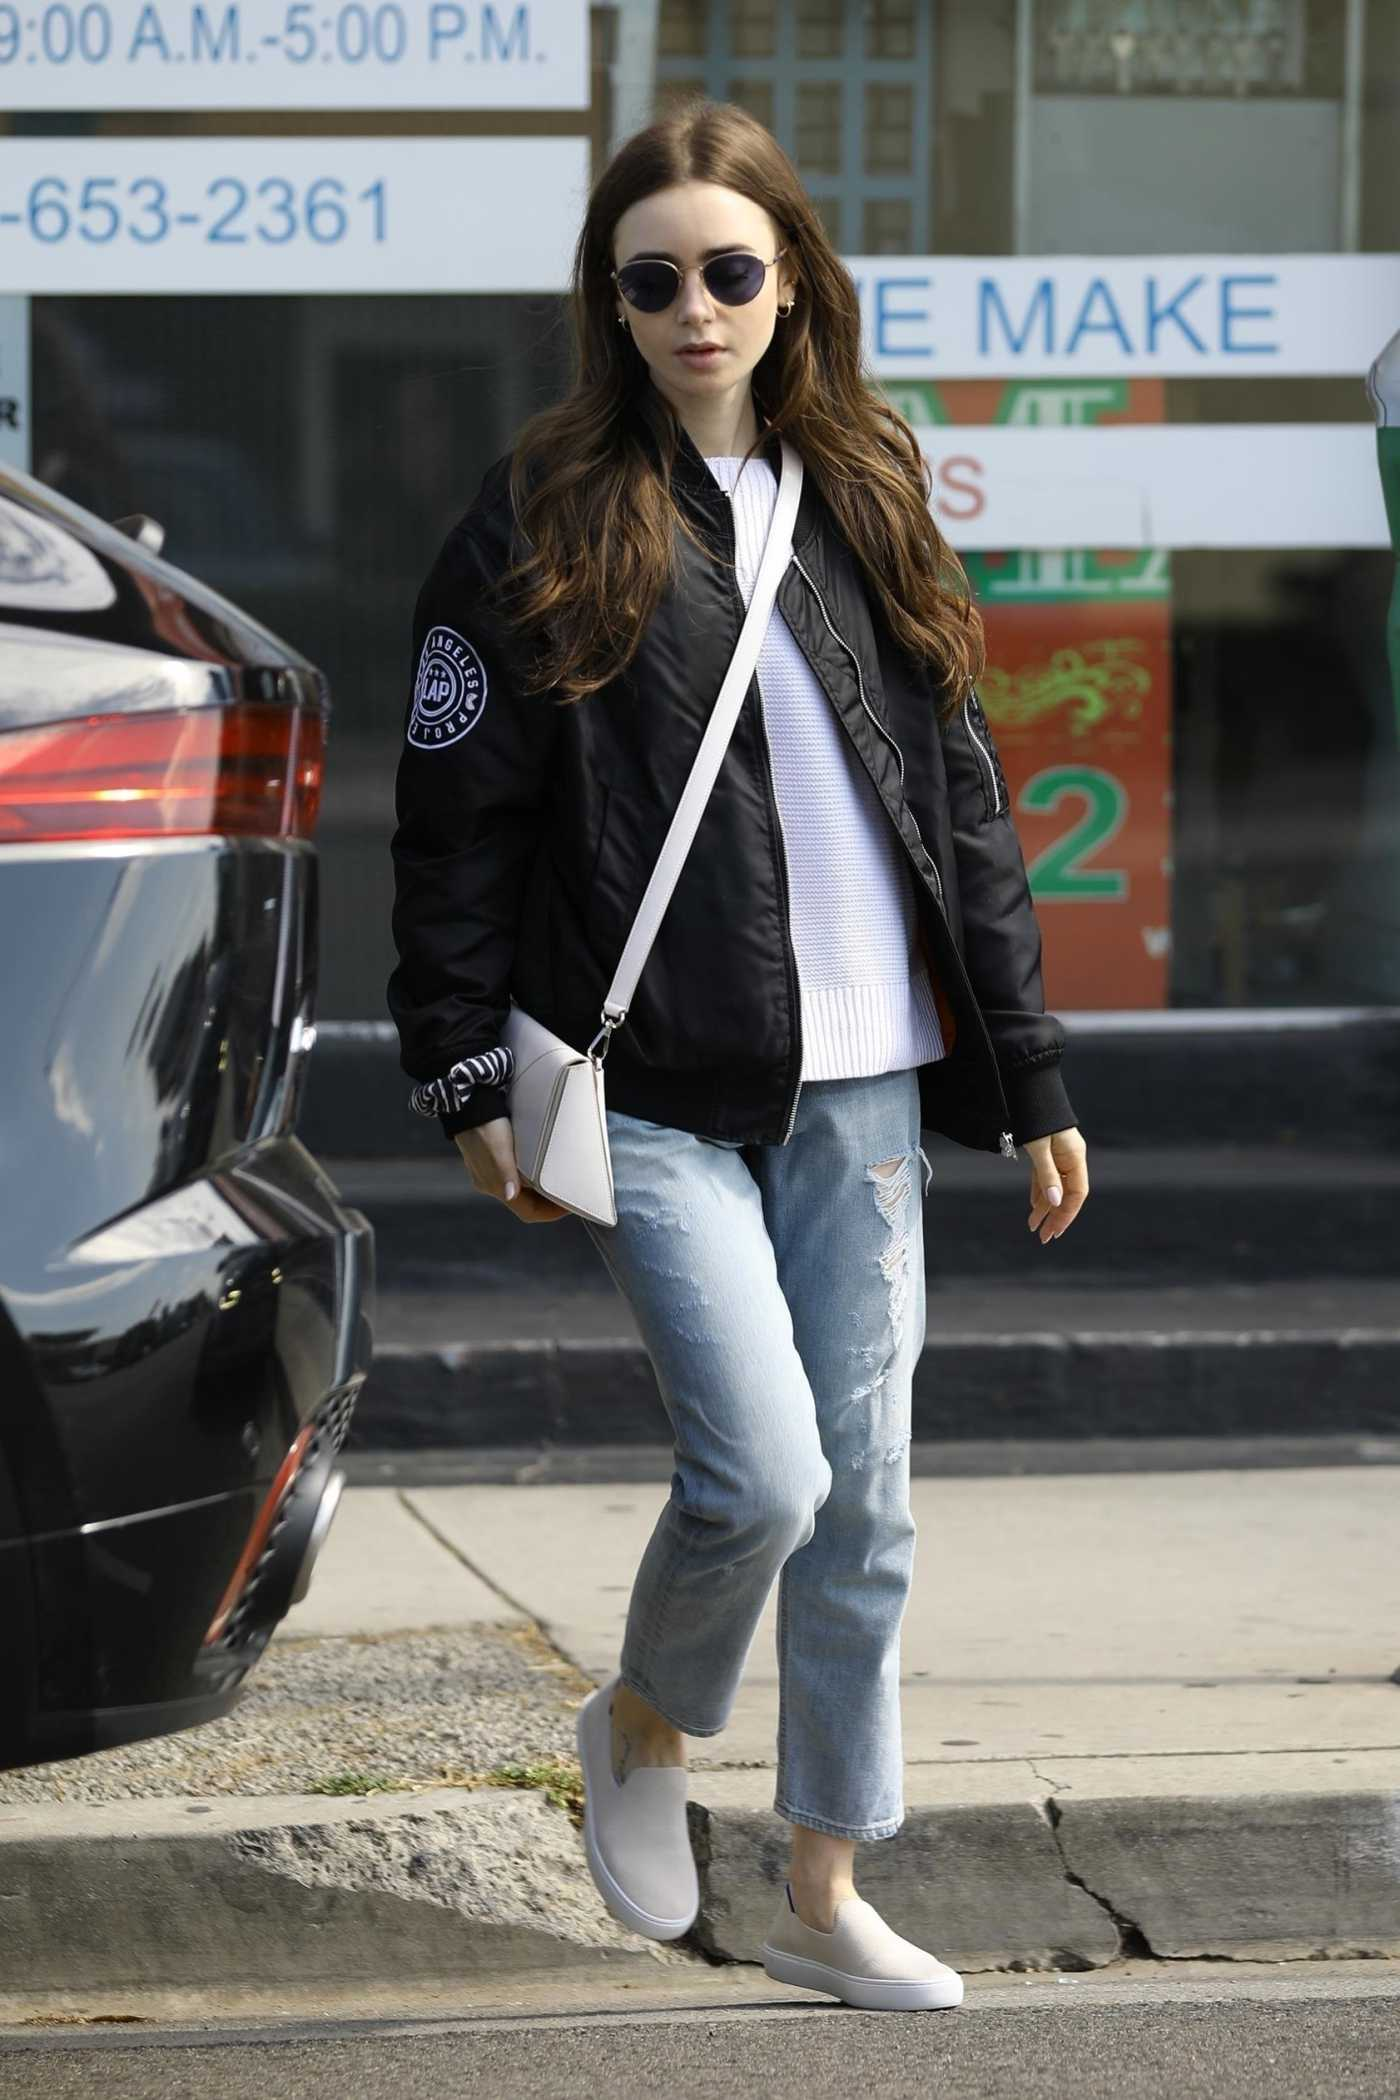 Lily Collins in a Blue Ripped Jeans Picking up Some Dry Cleaning in Los Angeles 05/11/2019